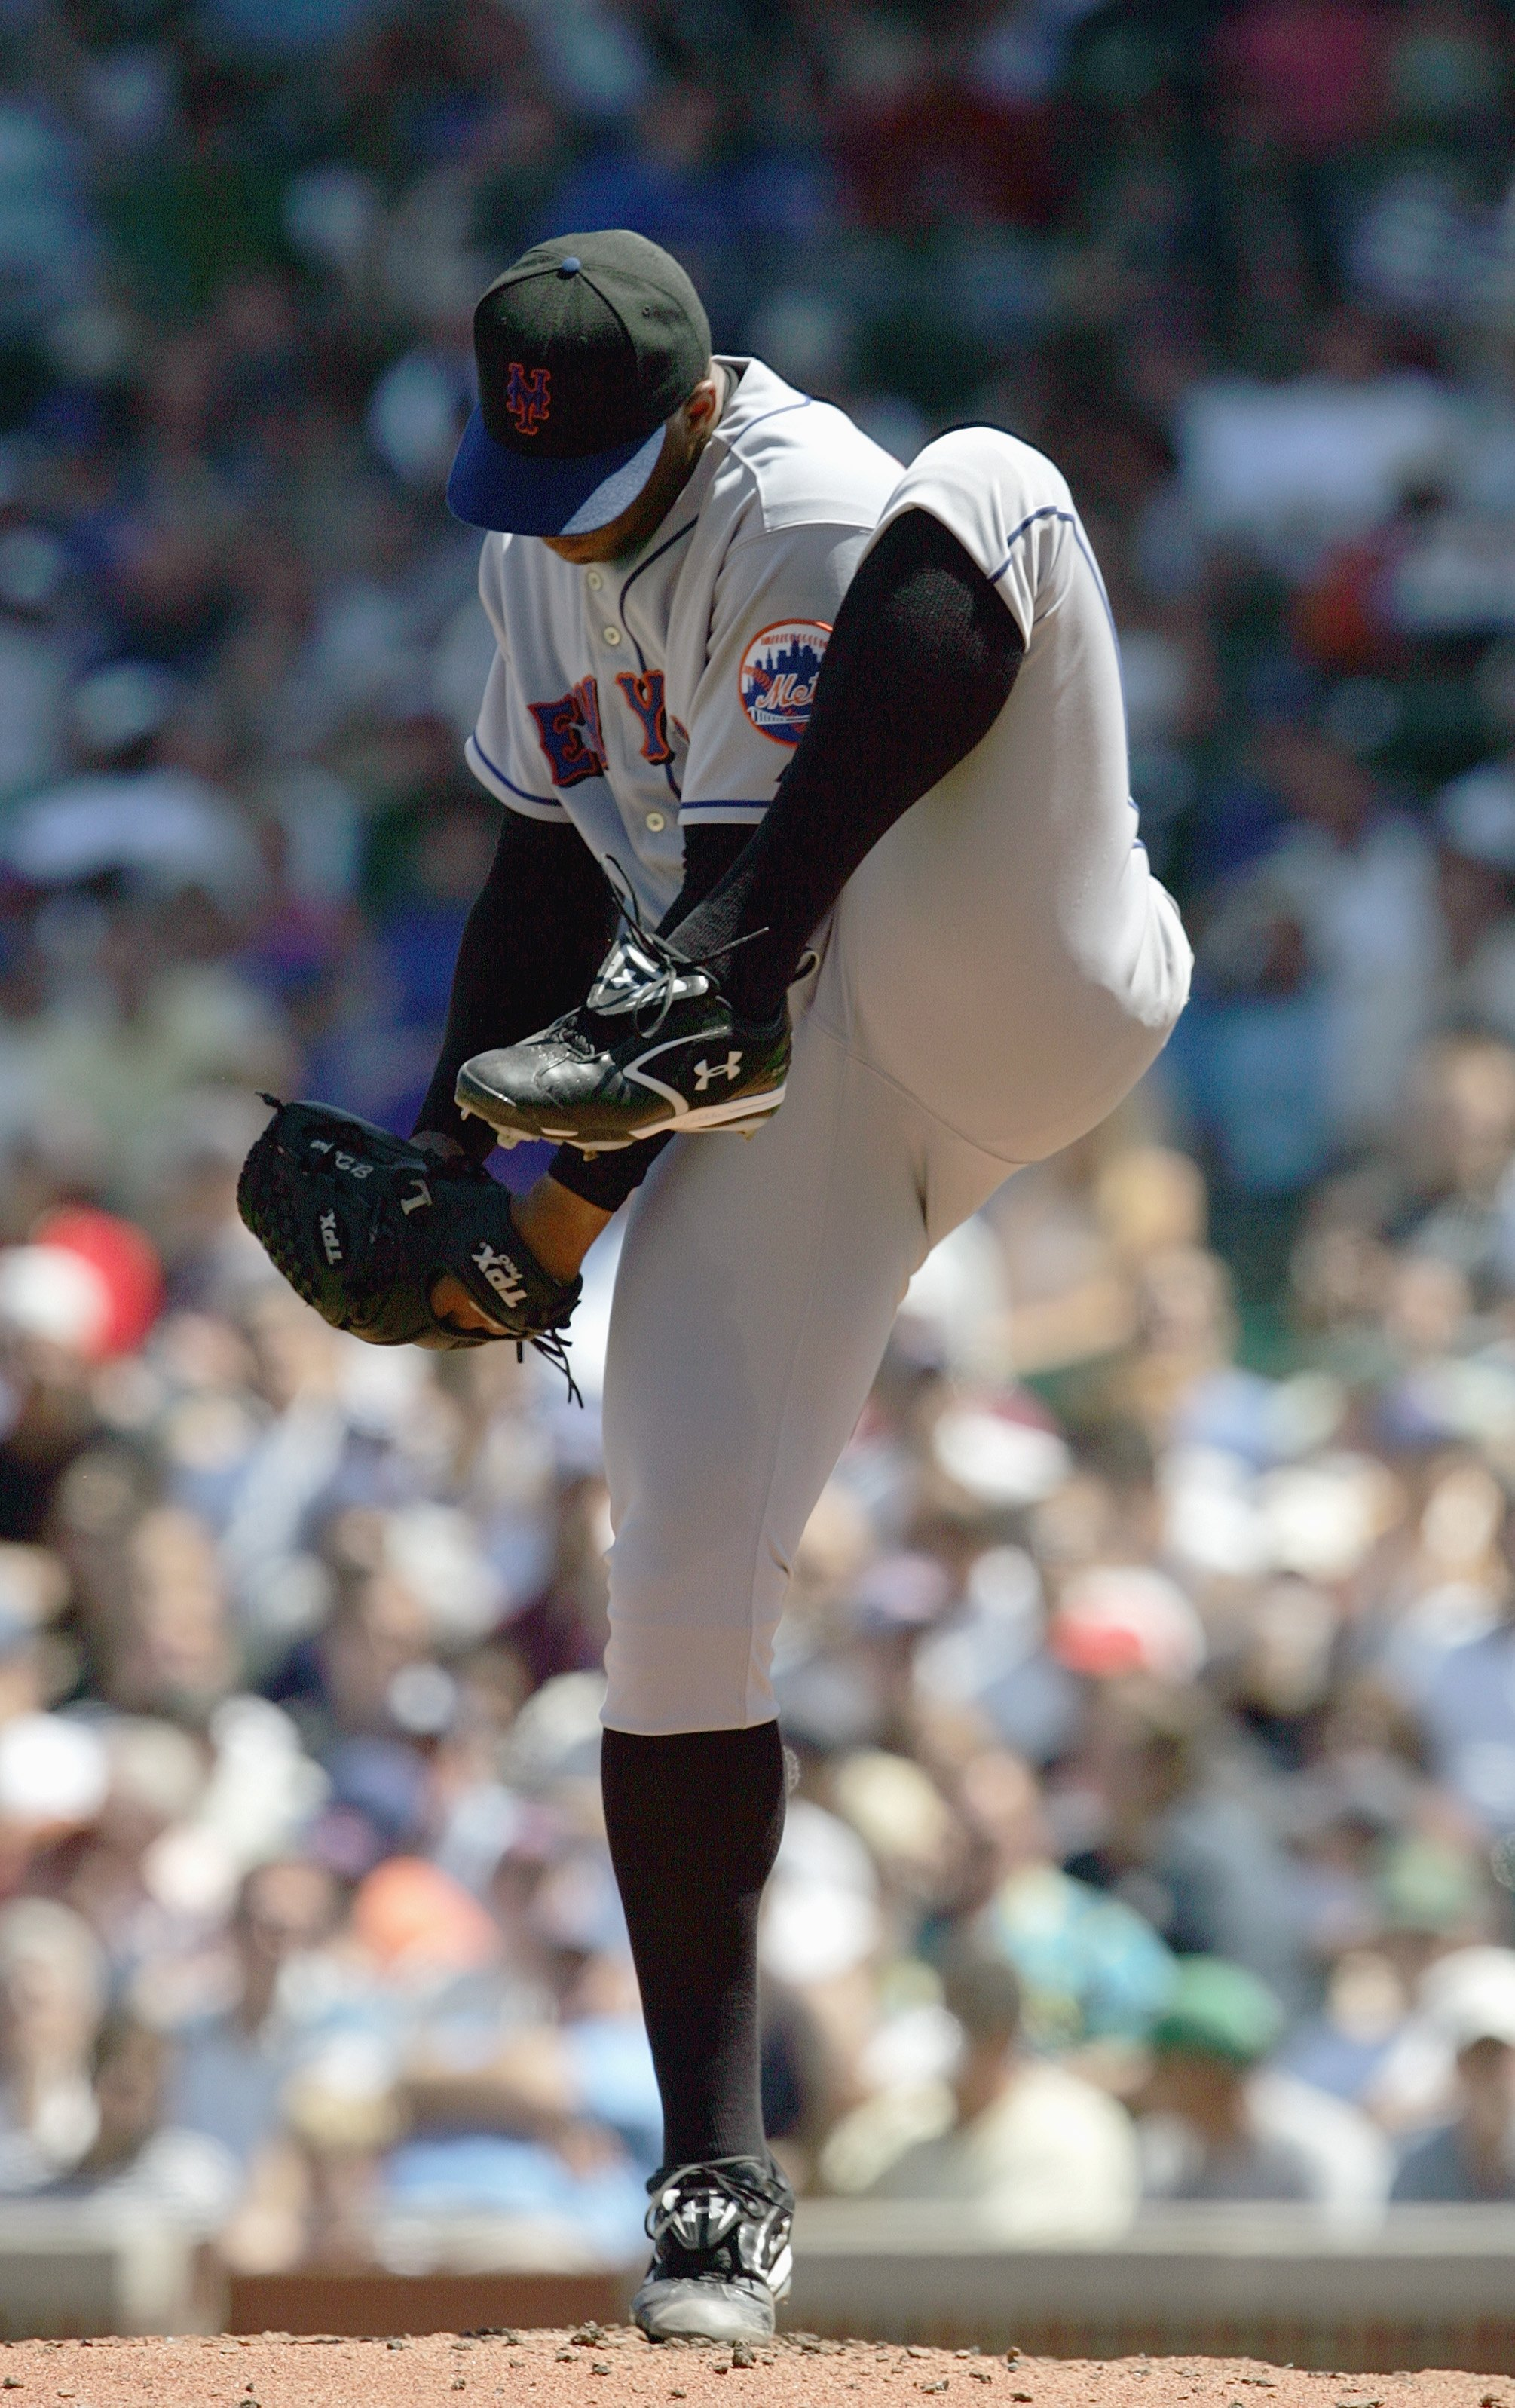 CHICAGO - AUGUST 3: Orlando Hernandez #26 of the New York Mets winds up to pitch during the game against the Chicago Cubs on August 3, 2007 at Wrigley Field in Chicago, Illinois. (Photo by Jonathan Daniel/Getty Images)